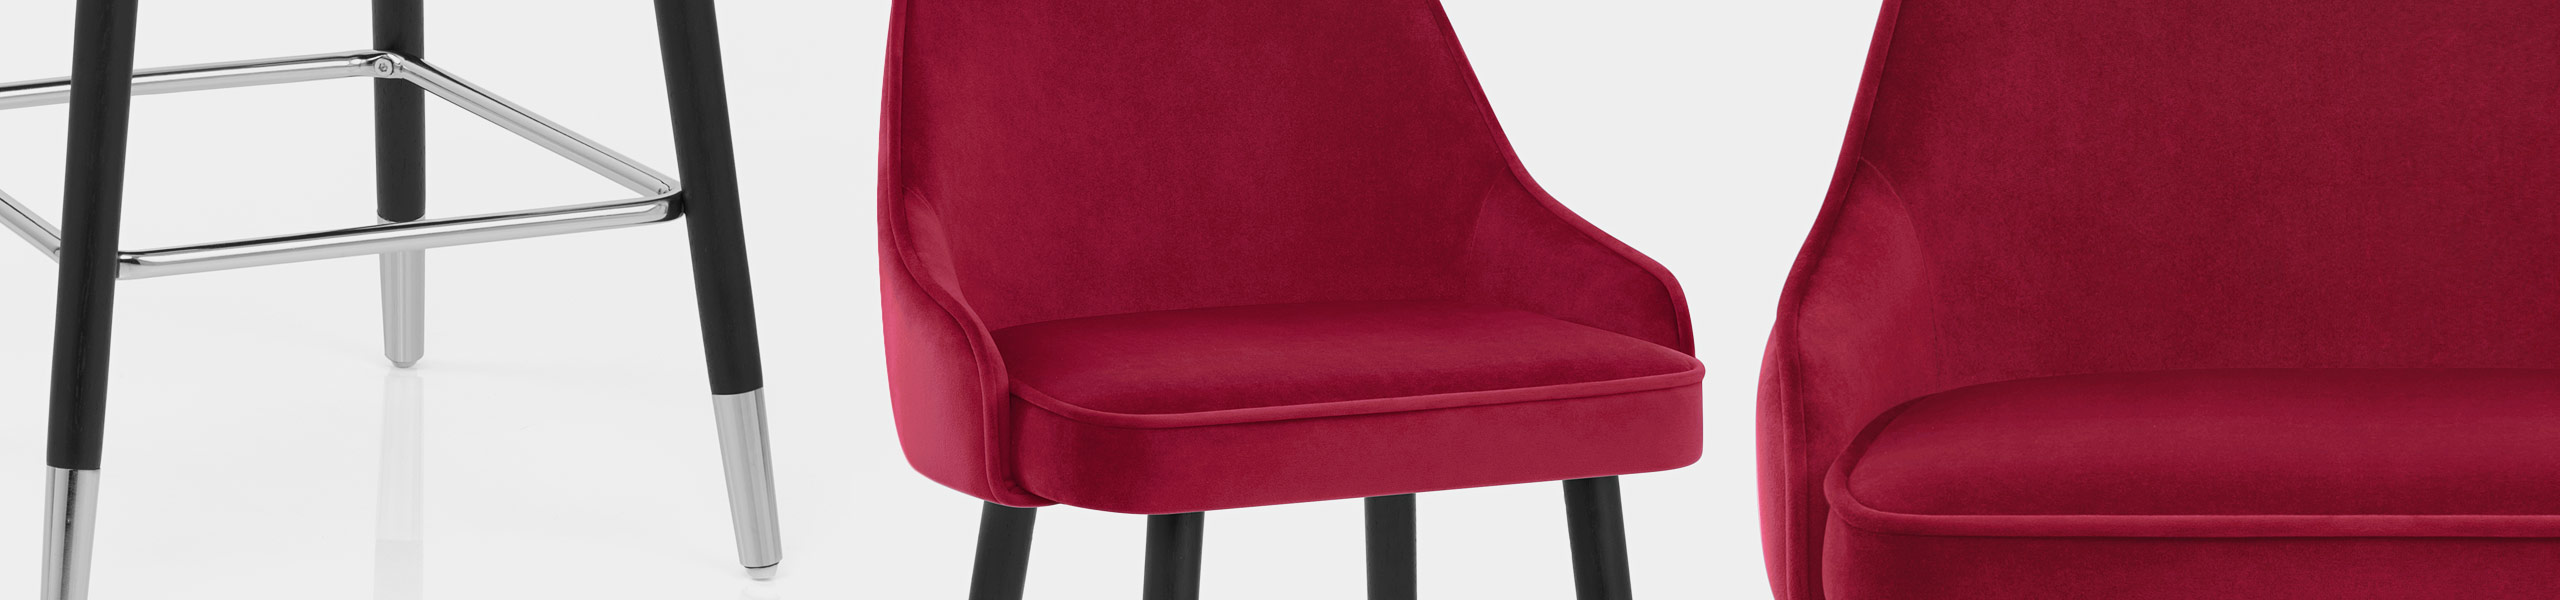 Glam Bar Stool Red Velvet Video Banner